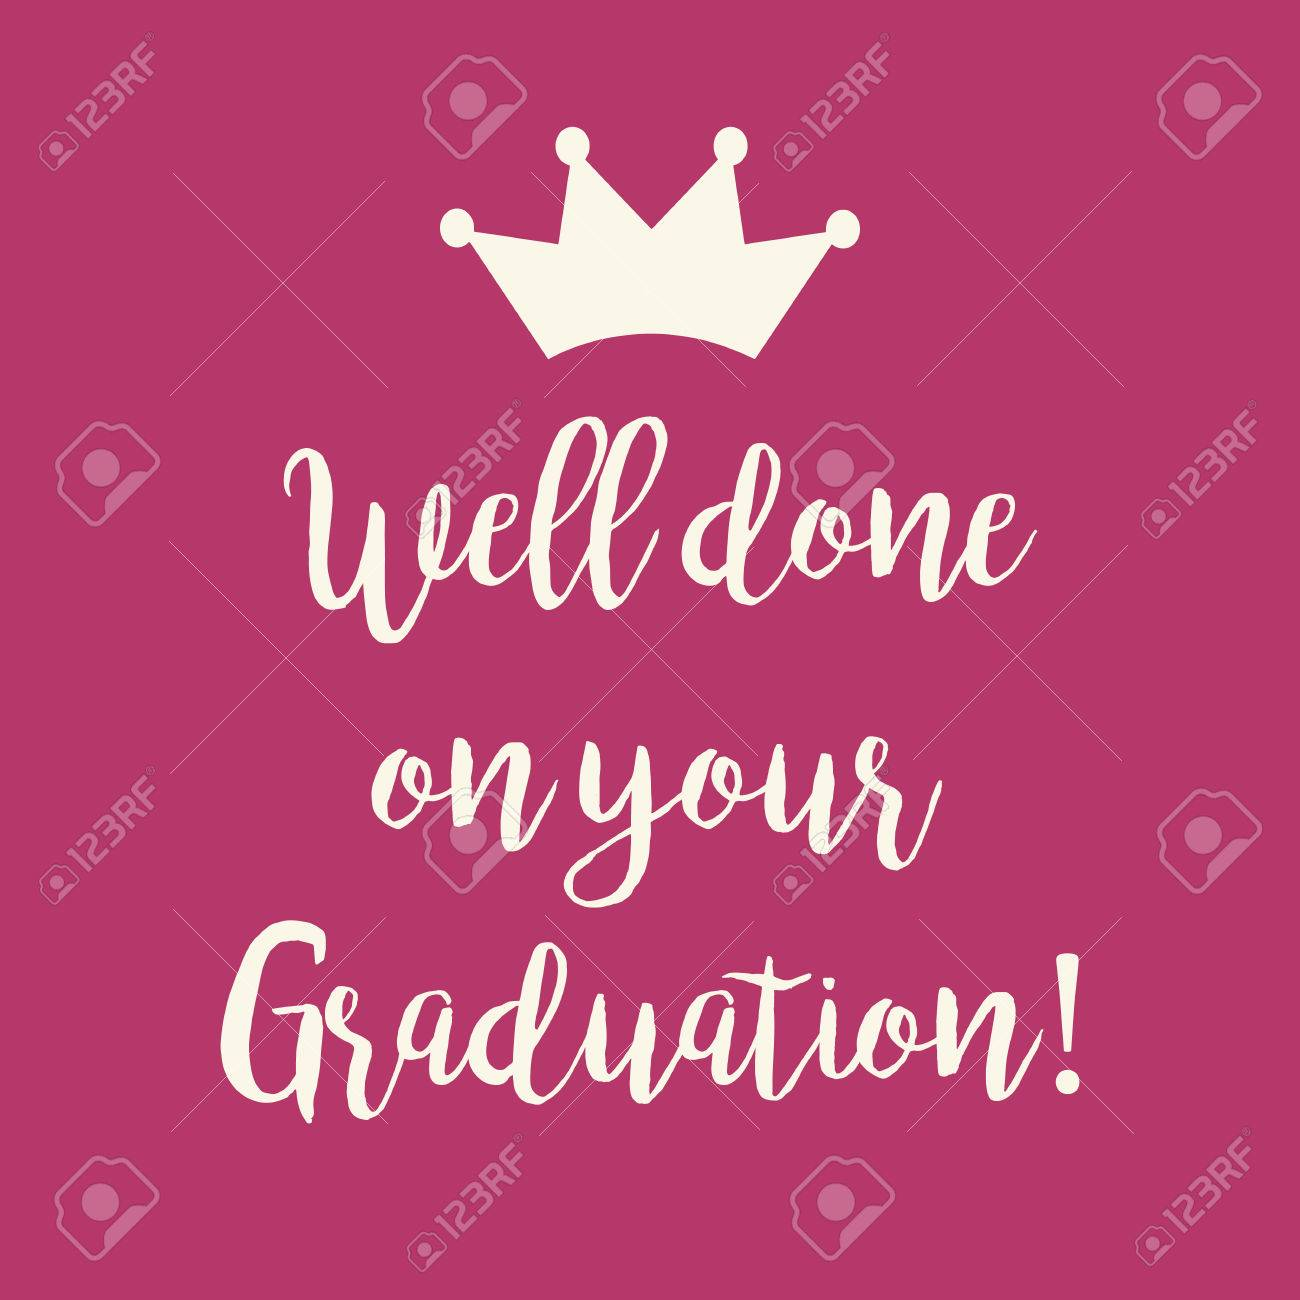 cute pink well done on your graduation congratulations greeting card with a crown stock vector